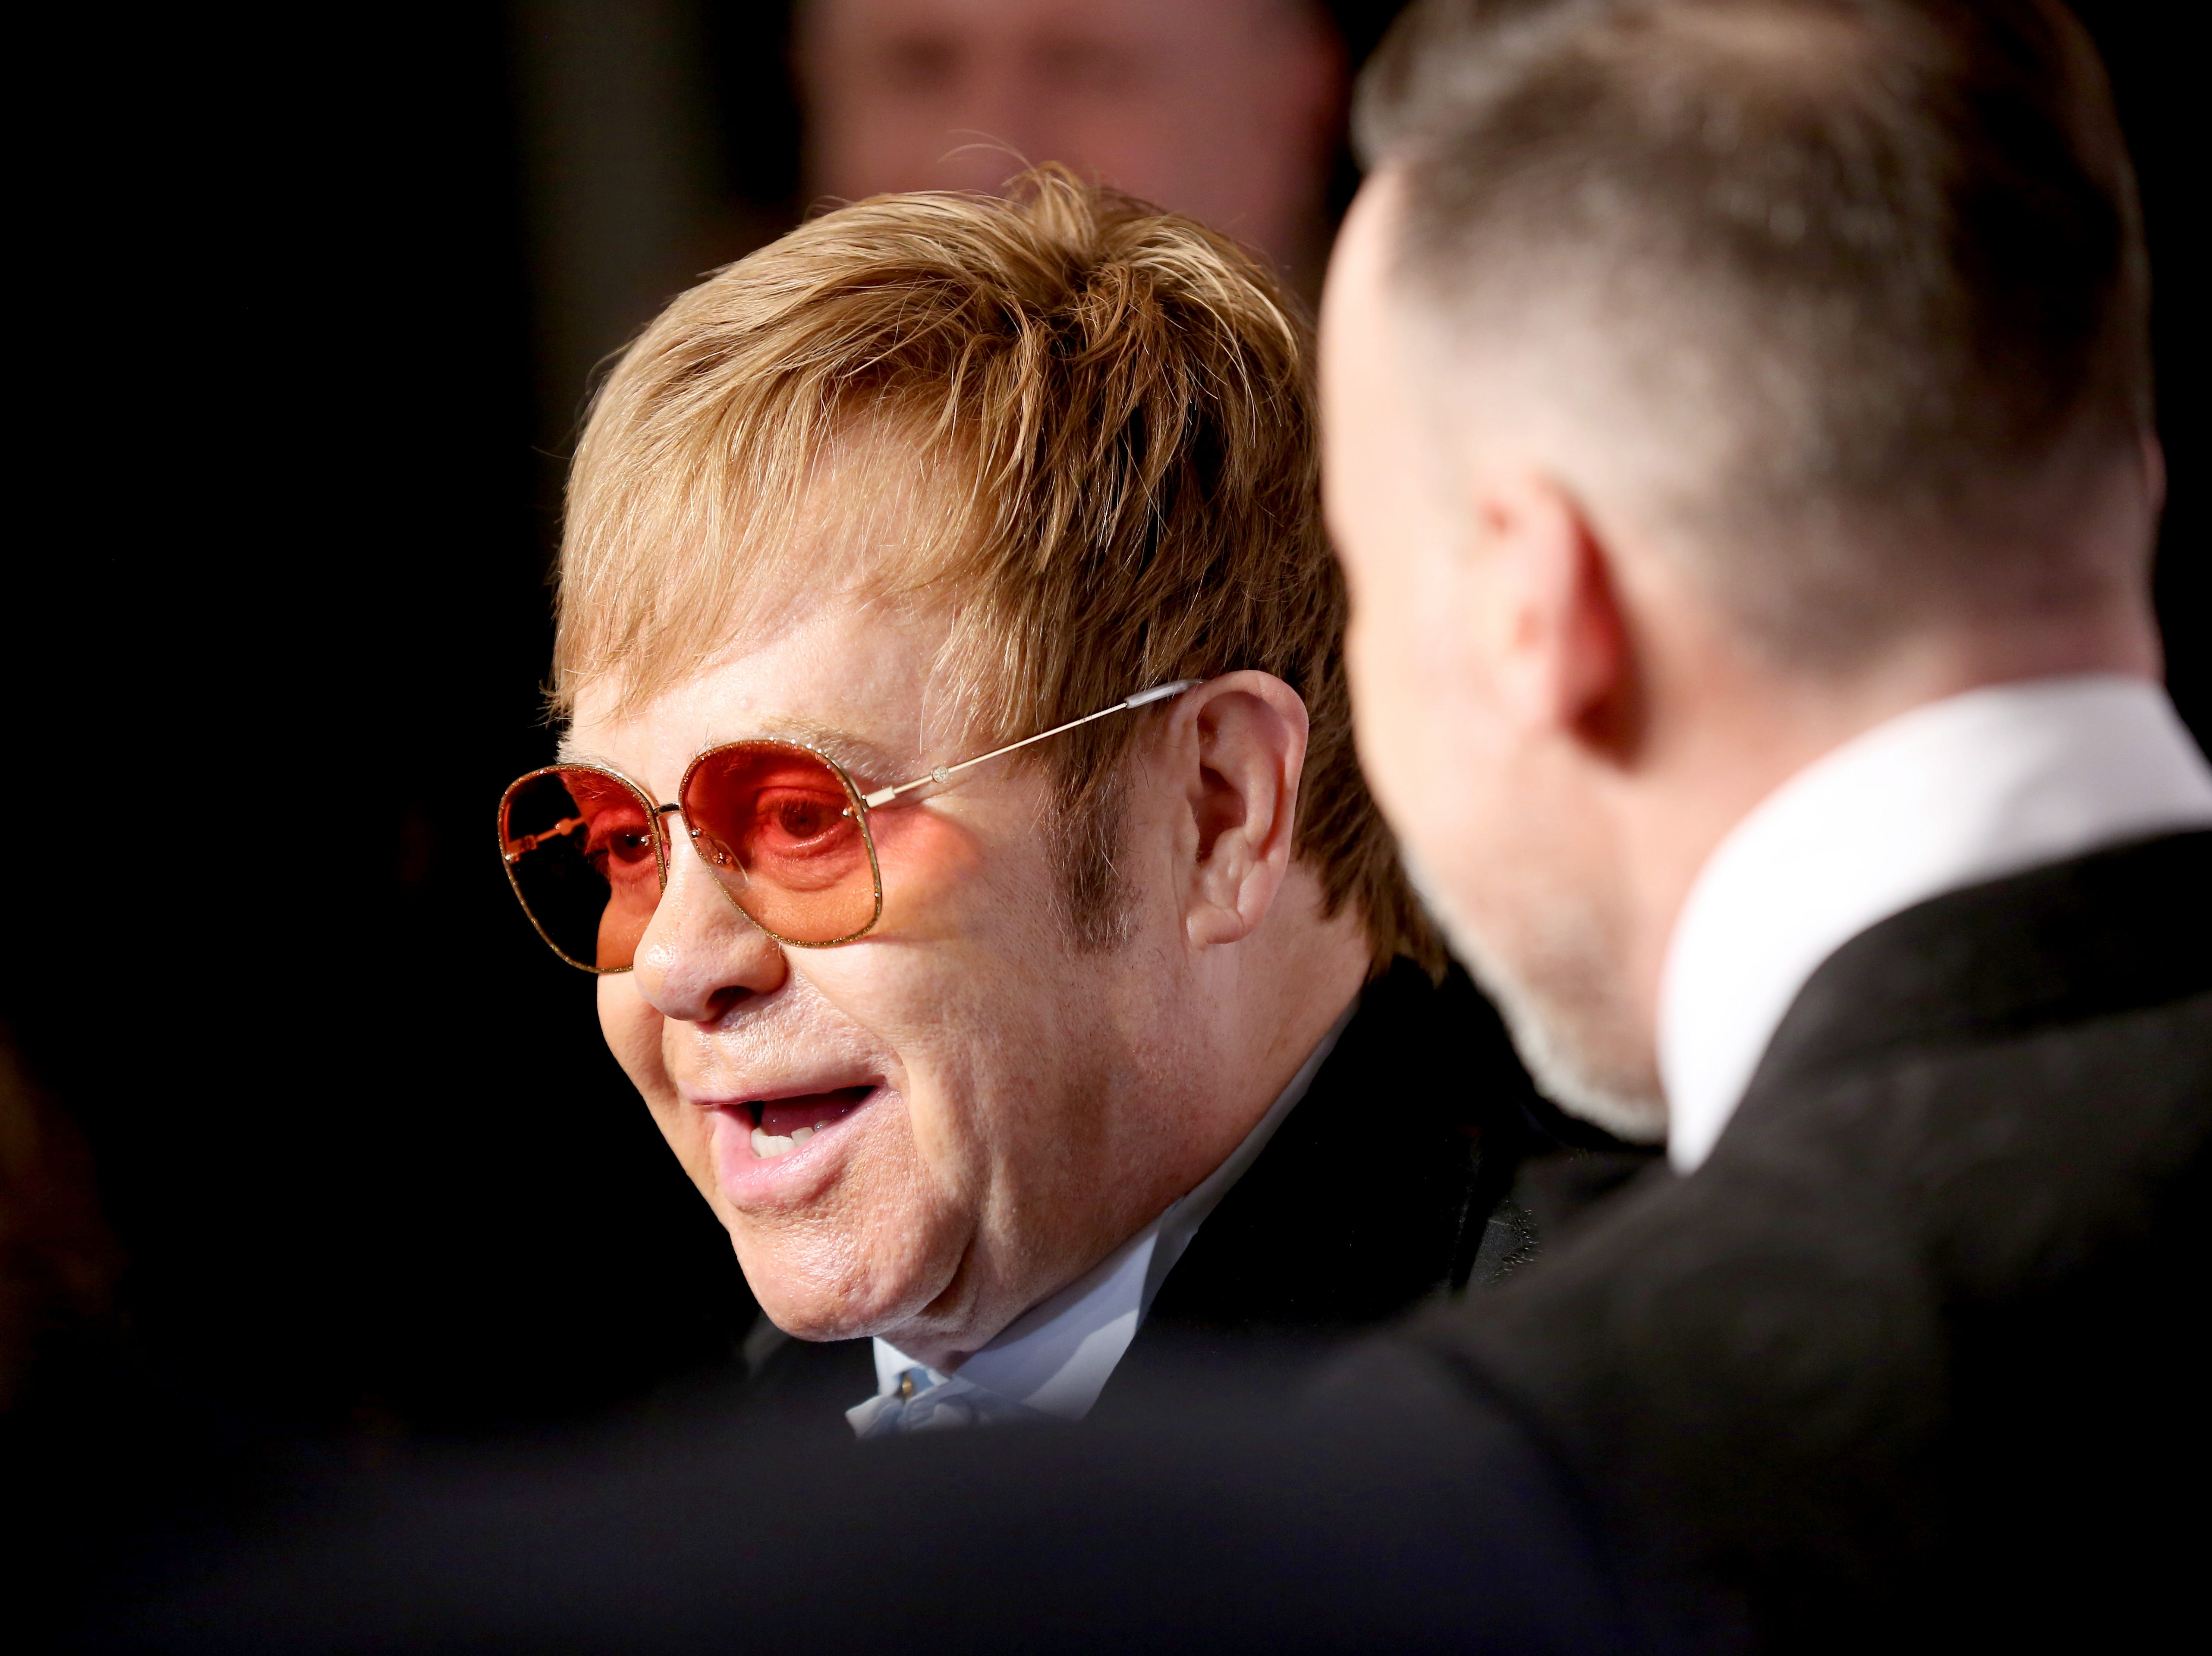 NEW YORK, NY - NOVEMBER 05:  Elton John attends the Elton John AIDS Foundation's 17th Annual An Enduring Vision Benefit at Cipriani 42nd Street on November 5, 2018 in New York City.  (Photo by Monica Schipper/WireImage) ORG XMIT: 775252041 ORIG FILE ID: 1057813212